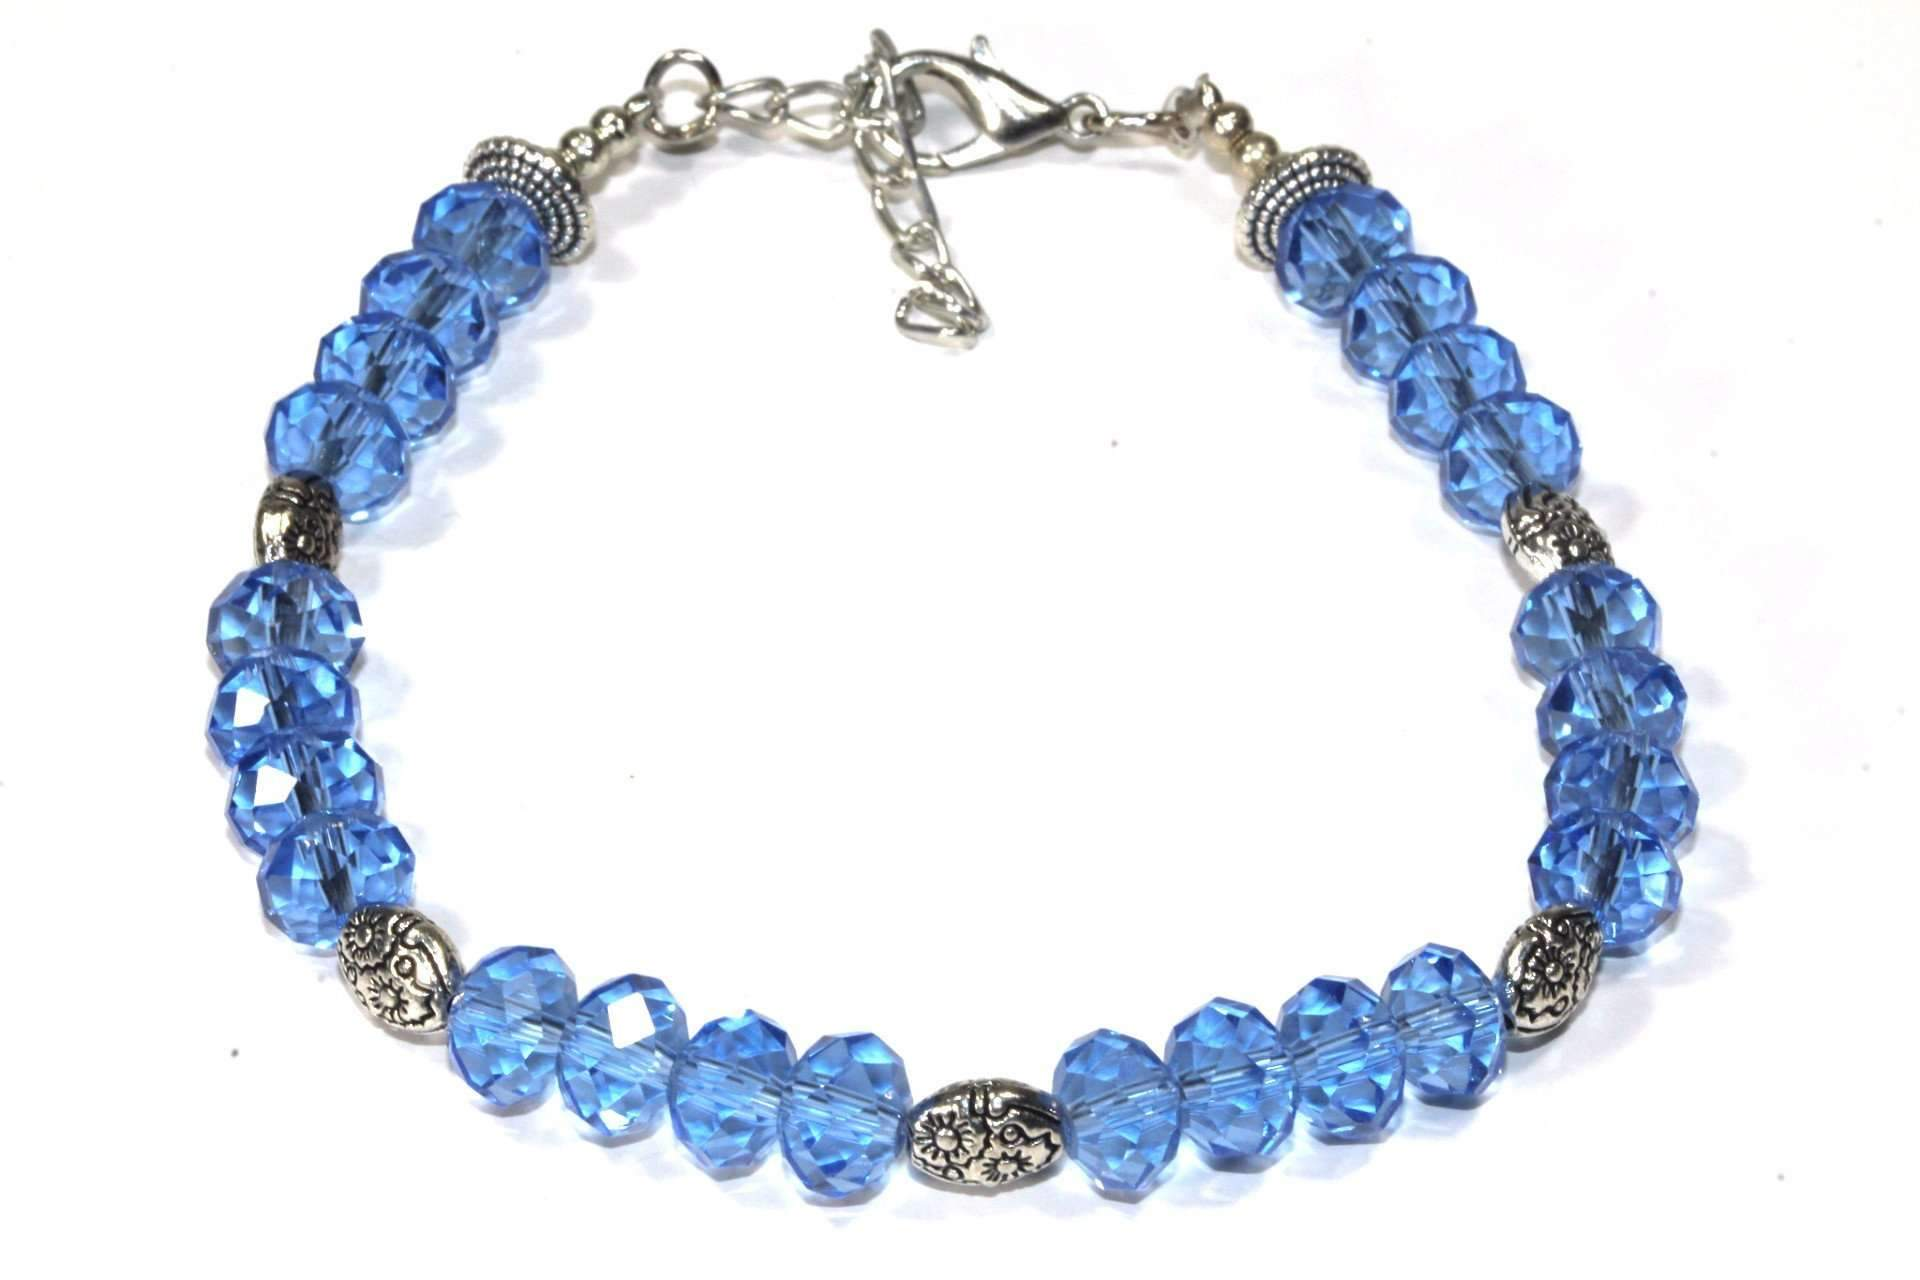 Sparkly Crystal Beads Bracelet